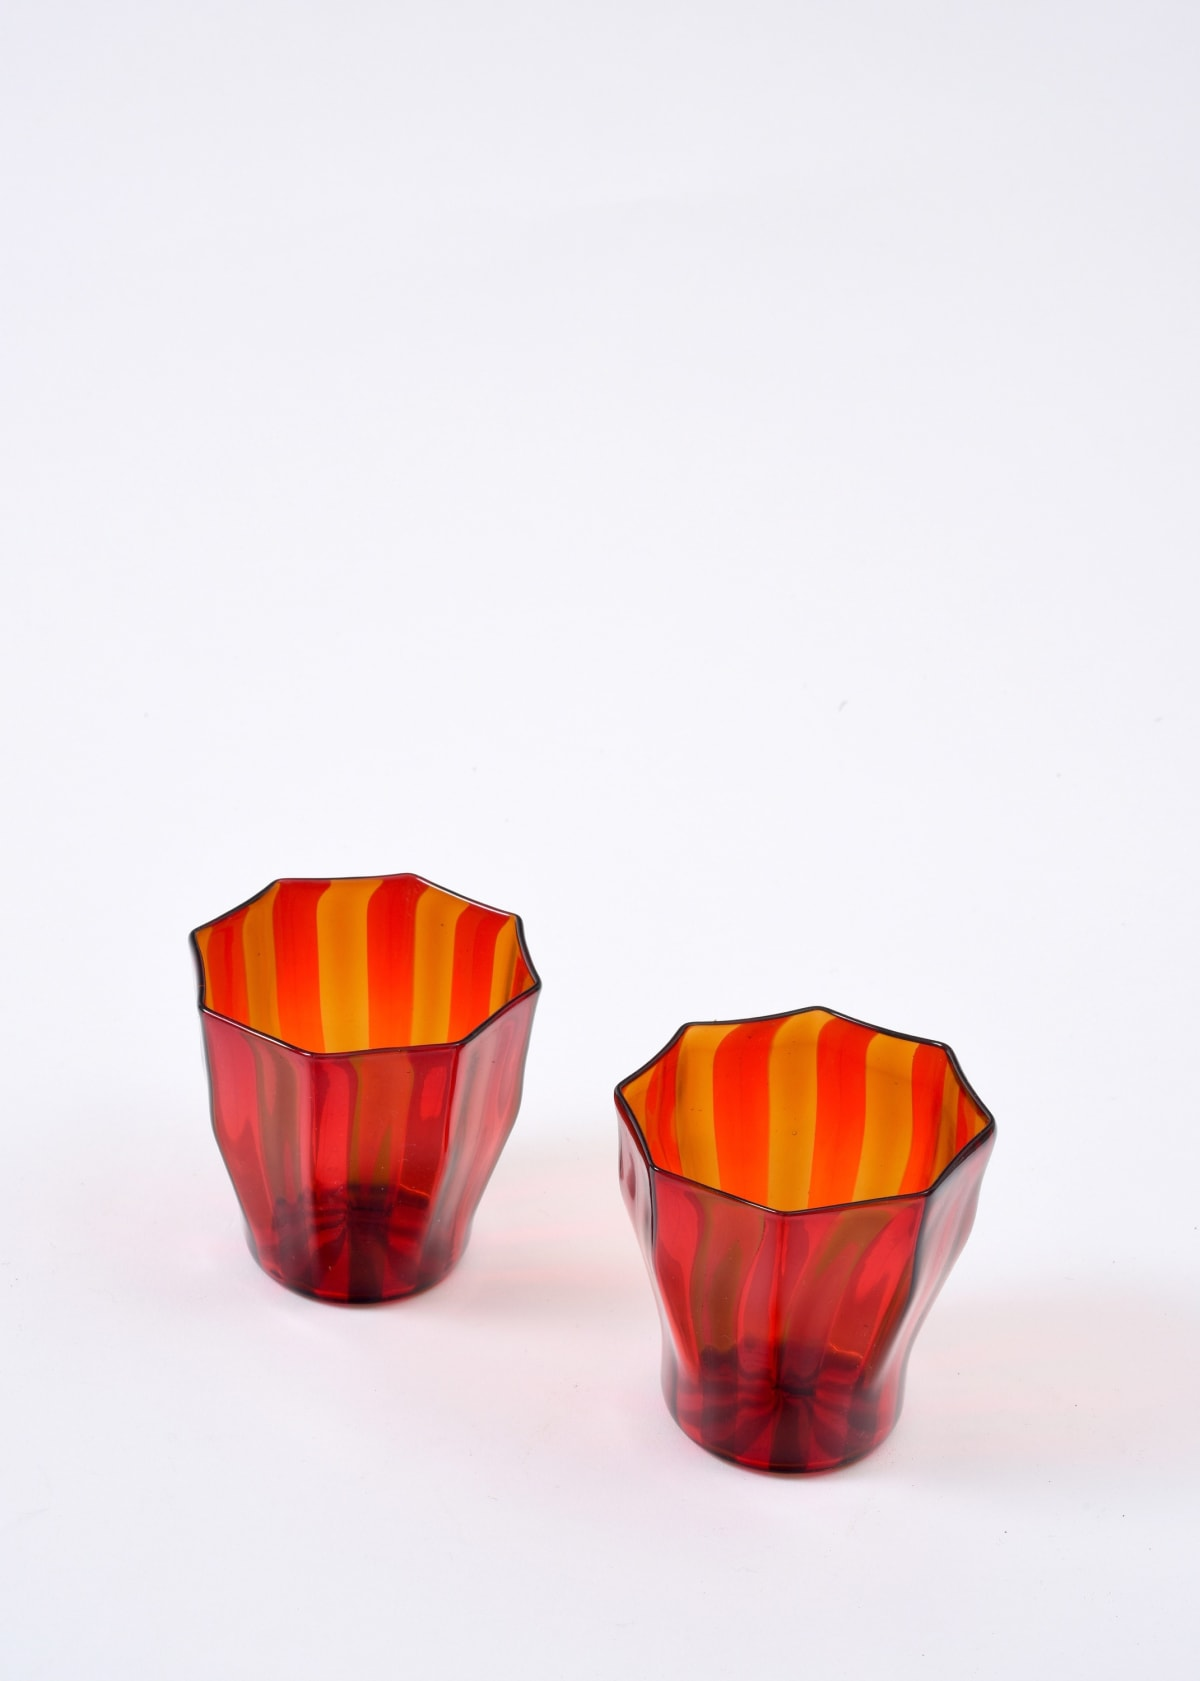 Campbell-Rey, Red and amber 'Rosanna' Murano tumbler